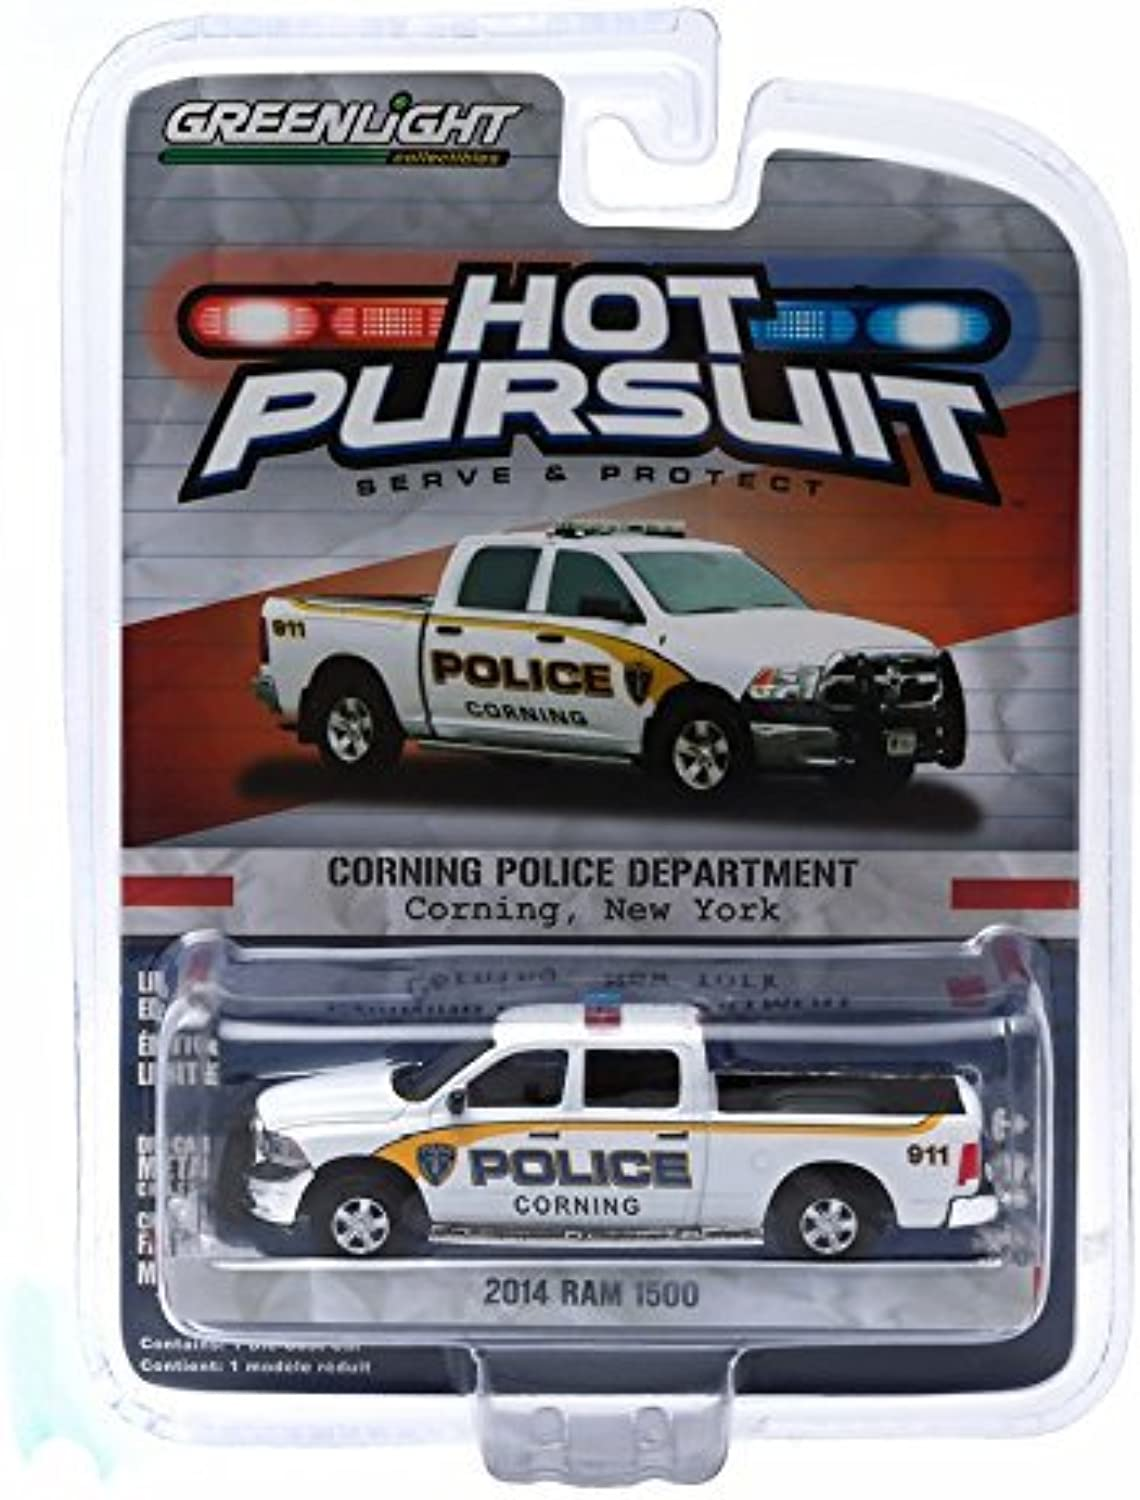 Greenlight 1 64 Hot Pursuit Series 16 2014 Dodge Ram 1500 Corning New York Police by Greenlight